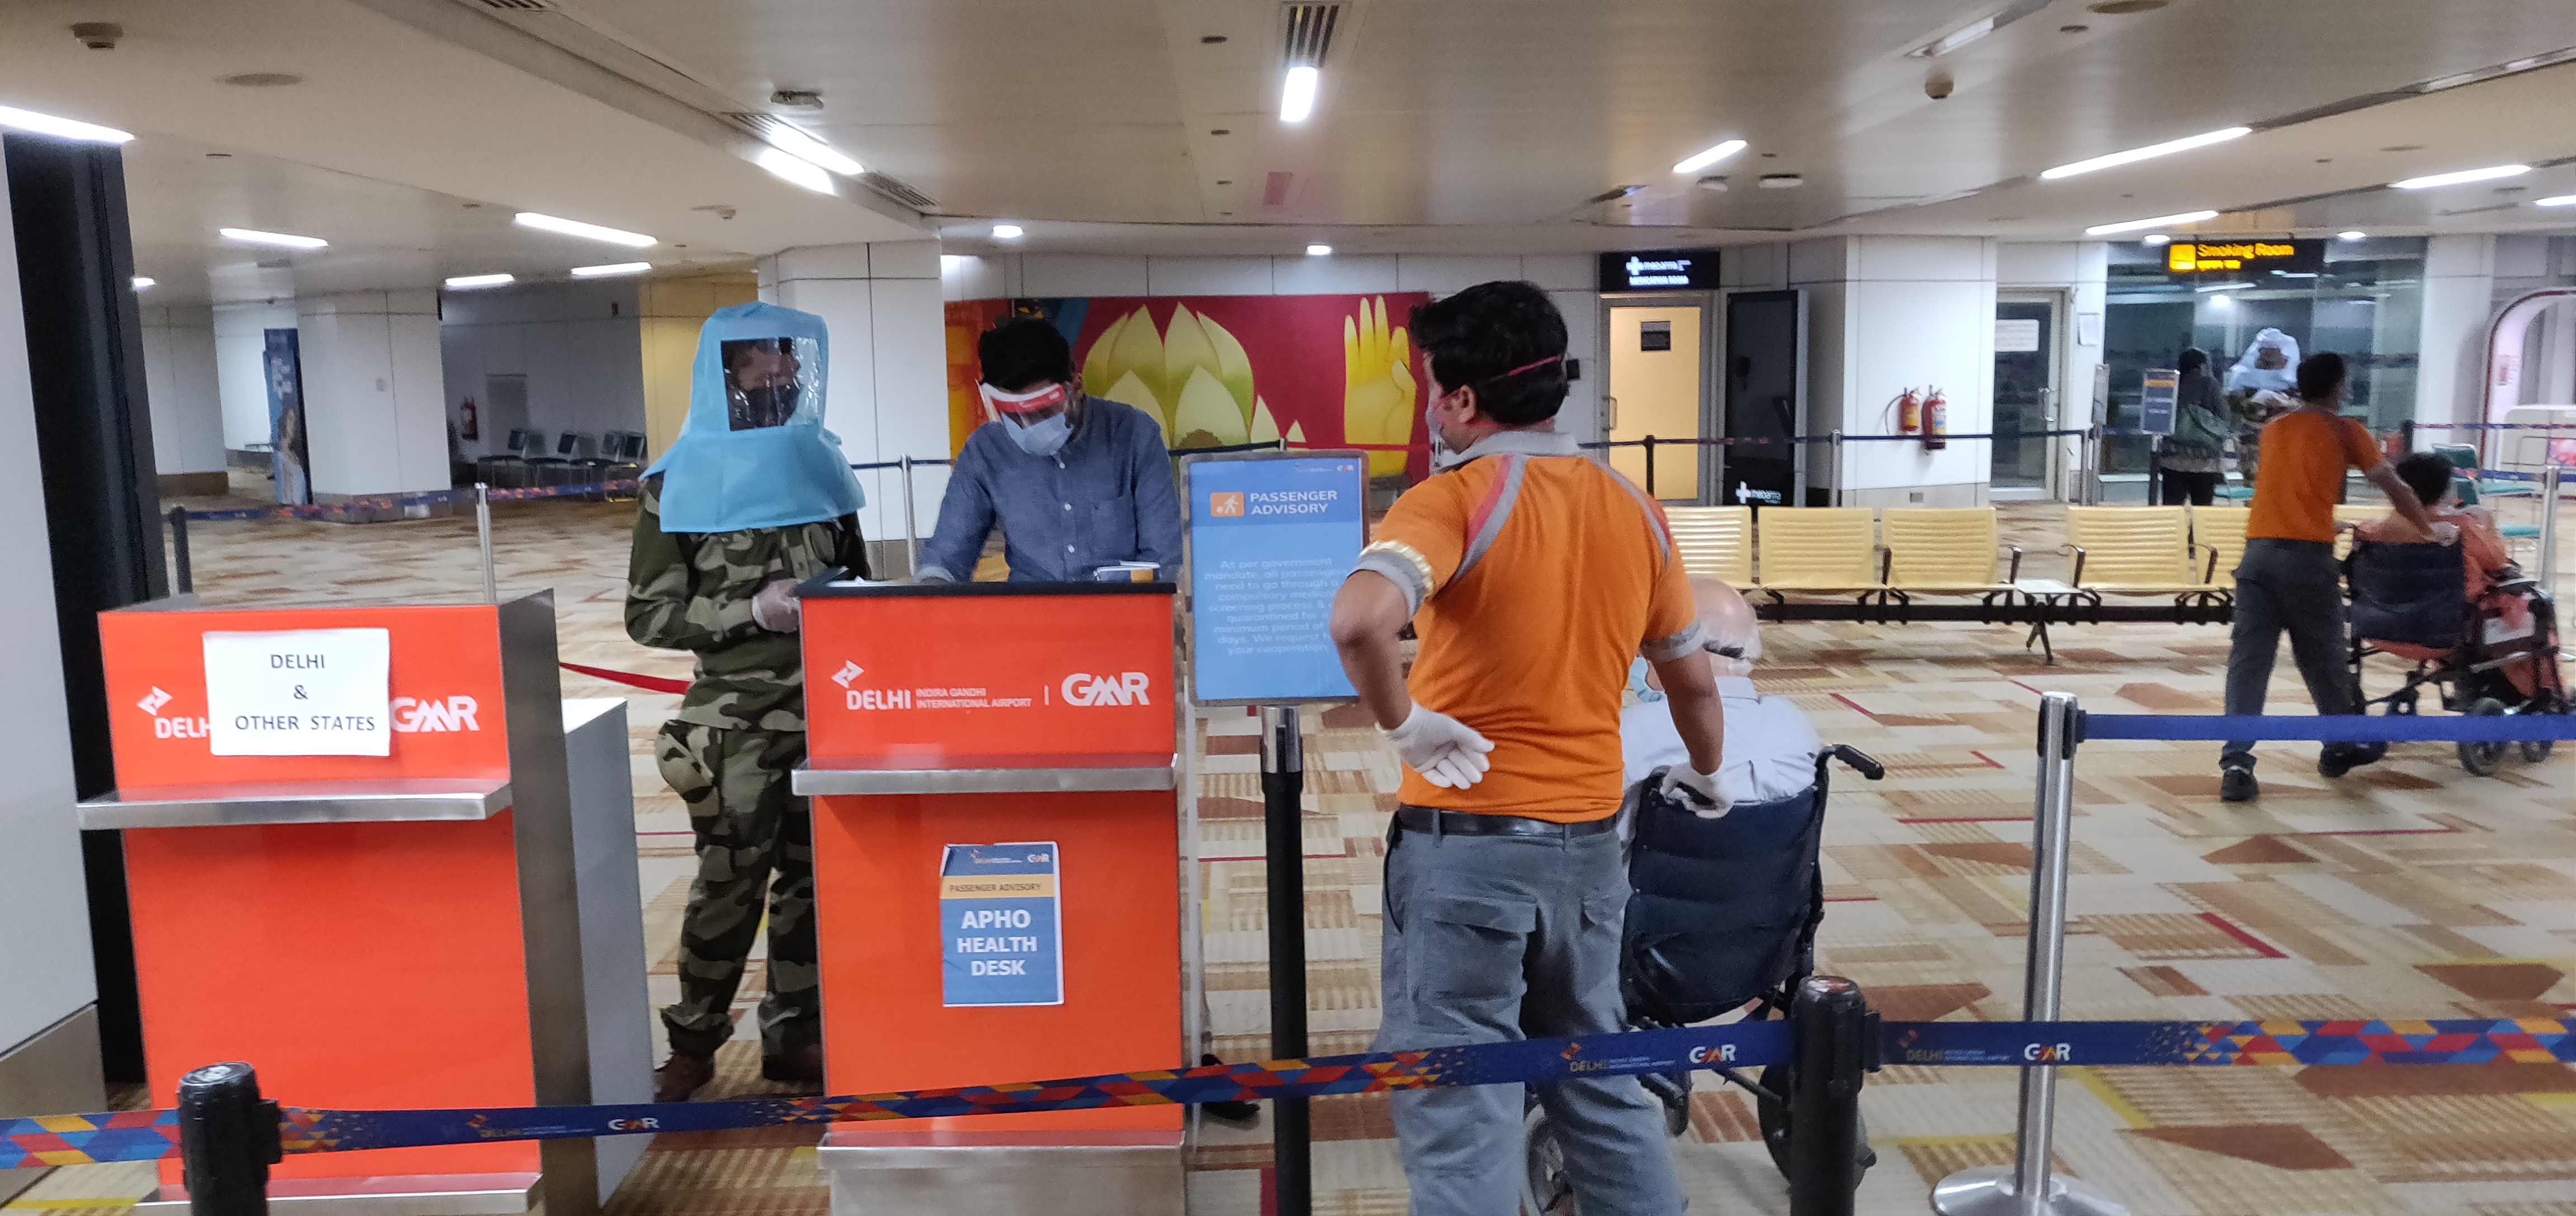 On average, 180 Indians are flying back daily to India as part of the Vande Bharat Mission flights, with about 25 arrivals to Singapore each day